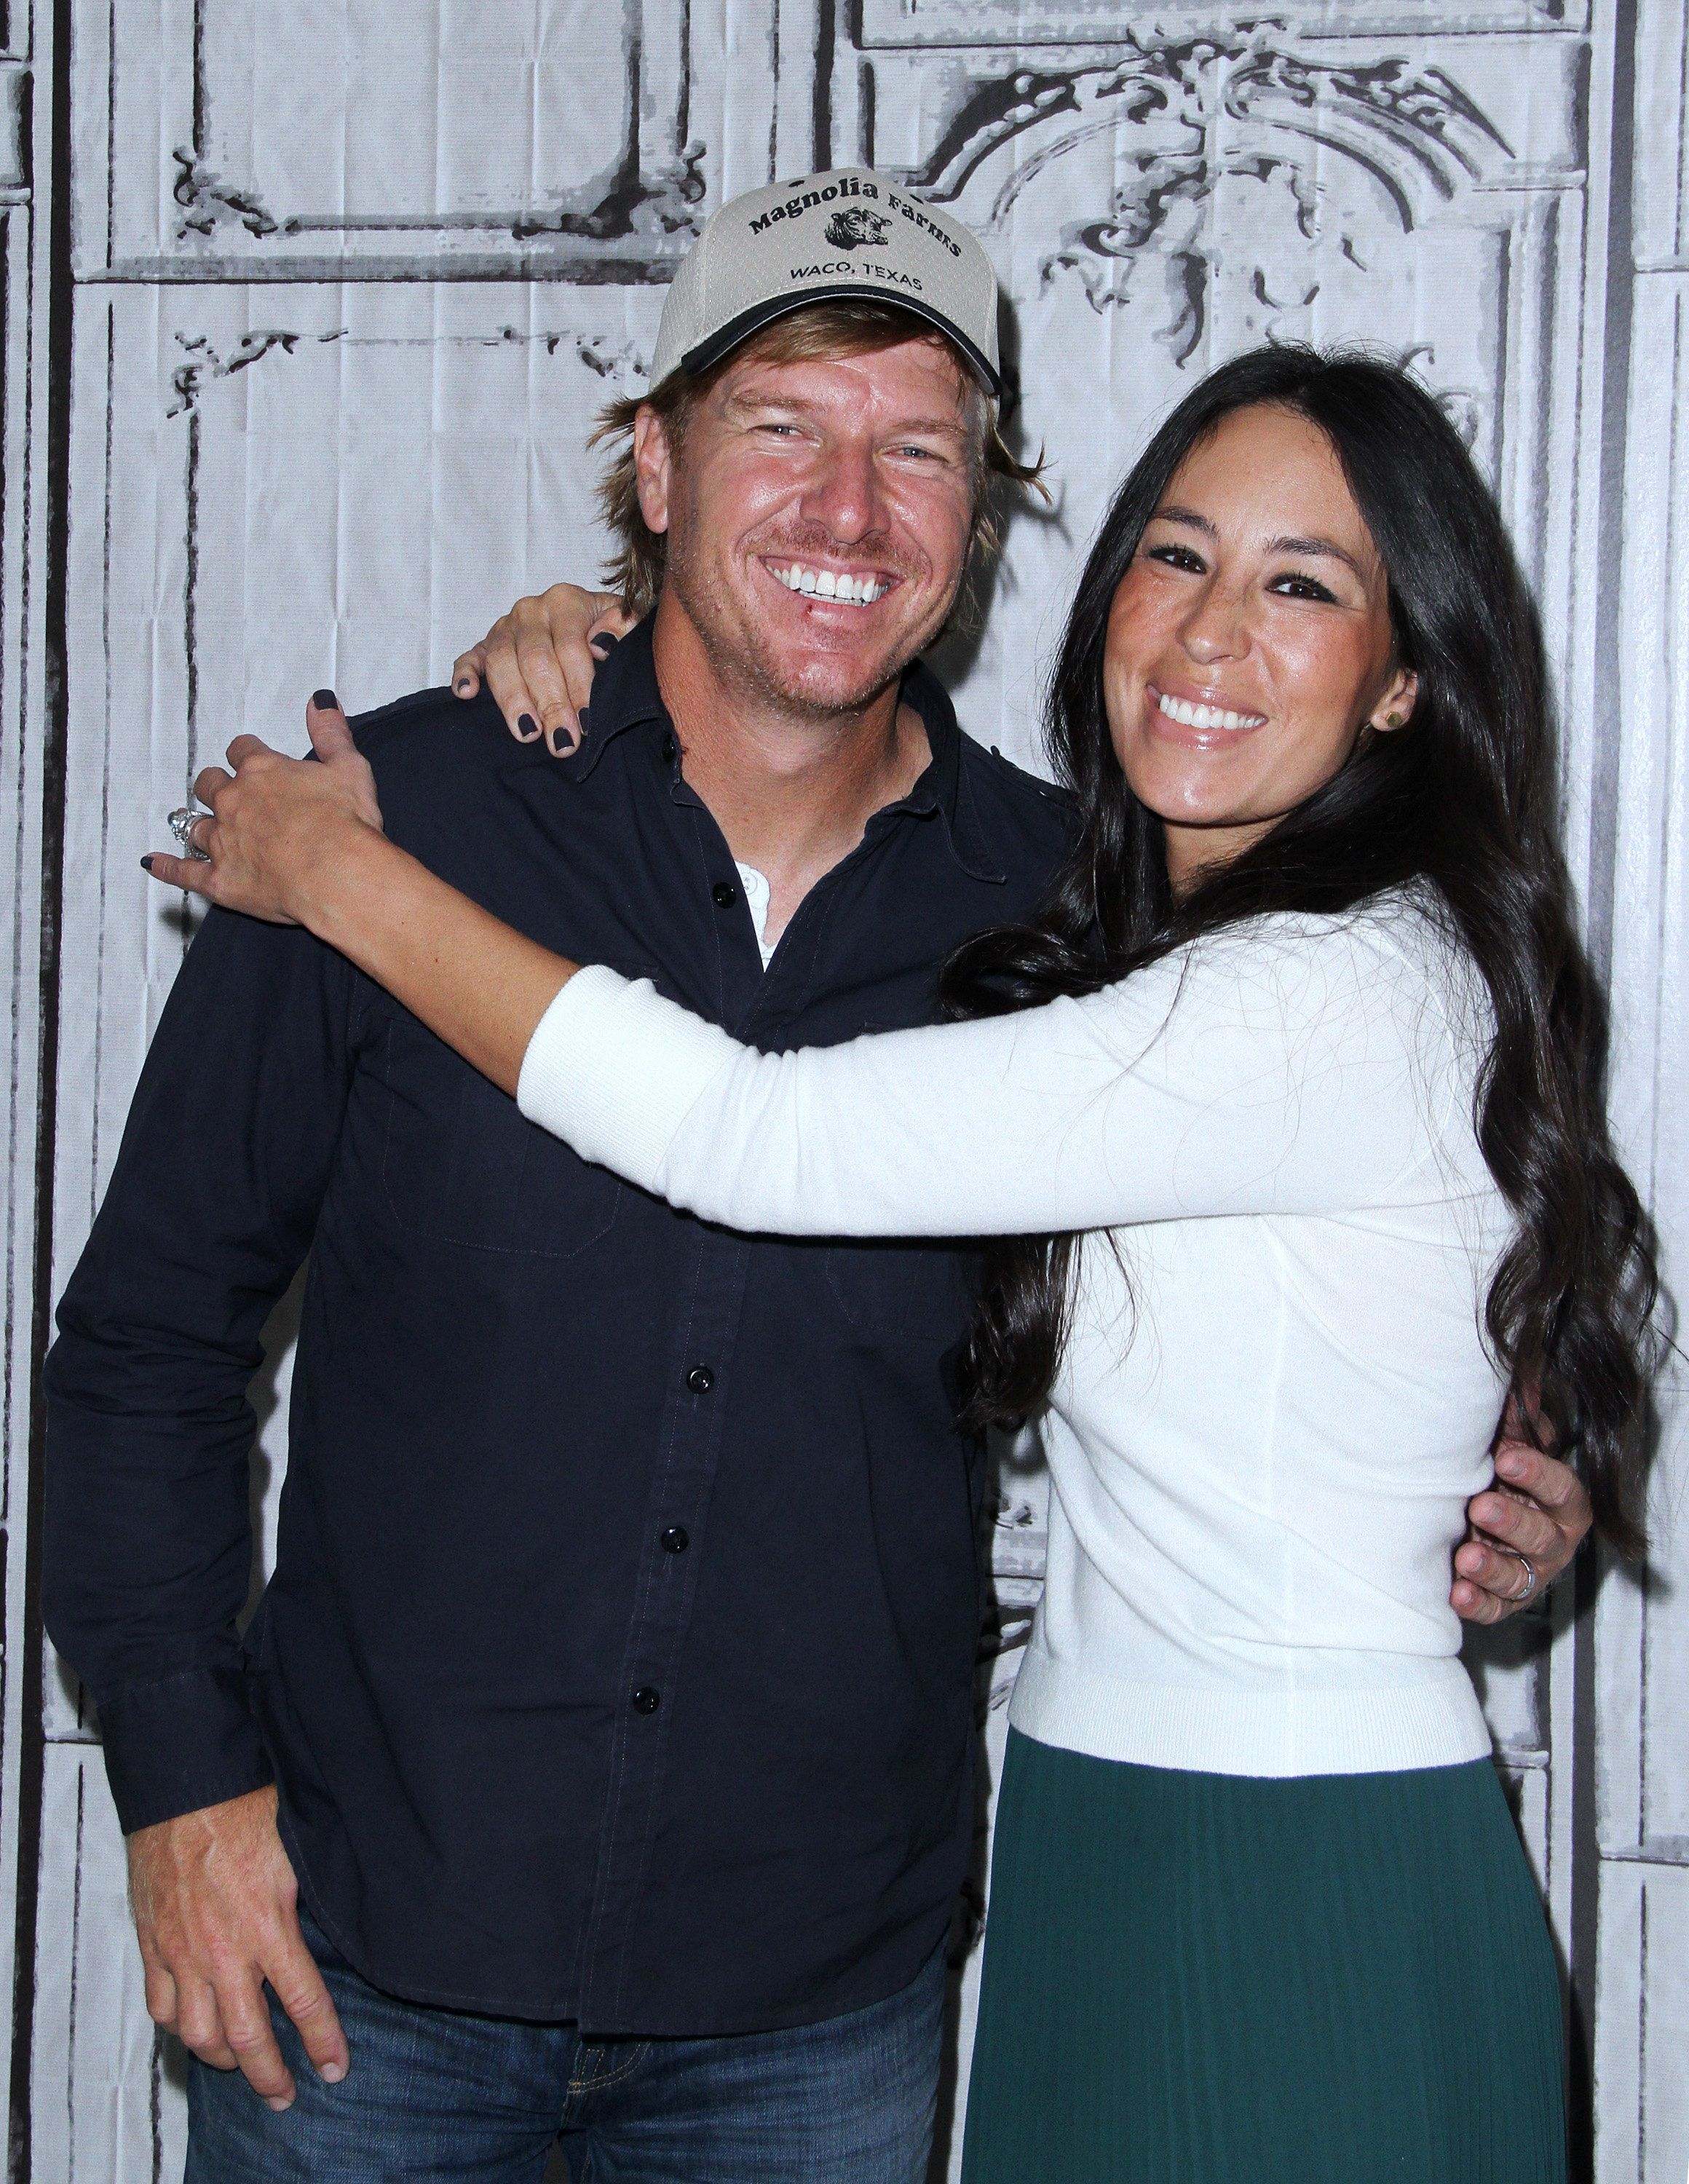 NEW YORK, NY - OCTOBER 19:  Chip Gaines and Joanna Gaines appear to promote 'The Magnolia Story' during the AOL BUILD Series at AOL HQ on October 19, 2016 in New York City.  (Photo by Donna Ward/Getty Images)